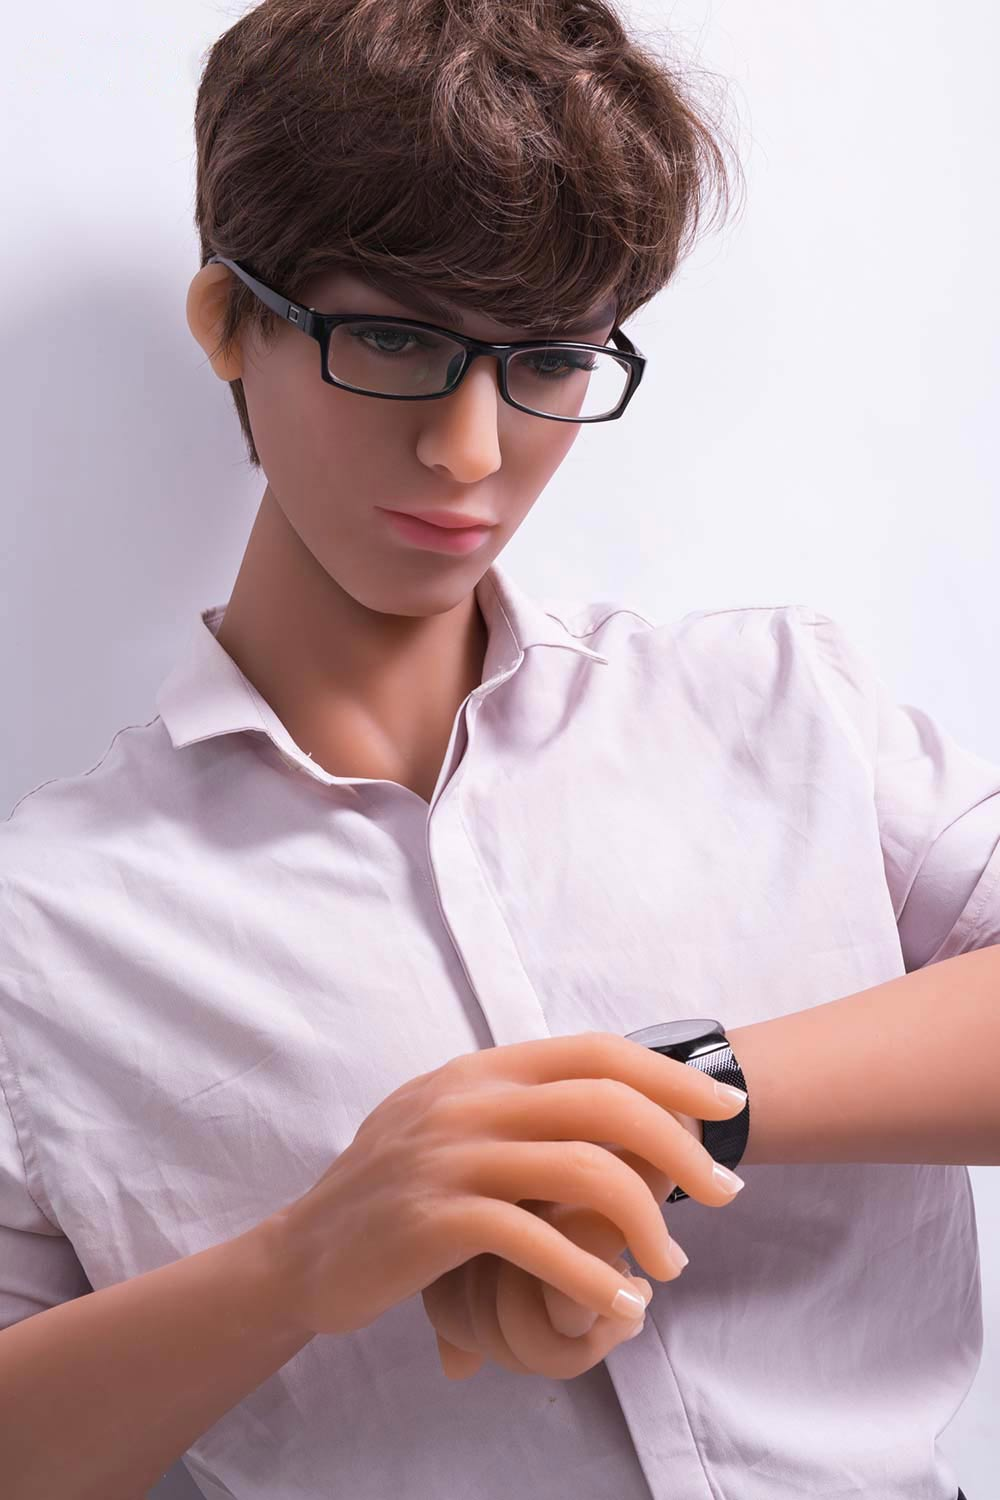 Male-sex-doll-looking-at-watch